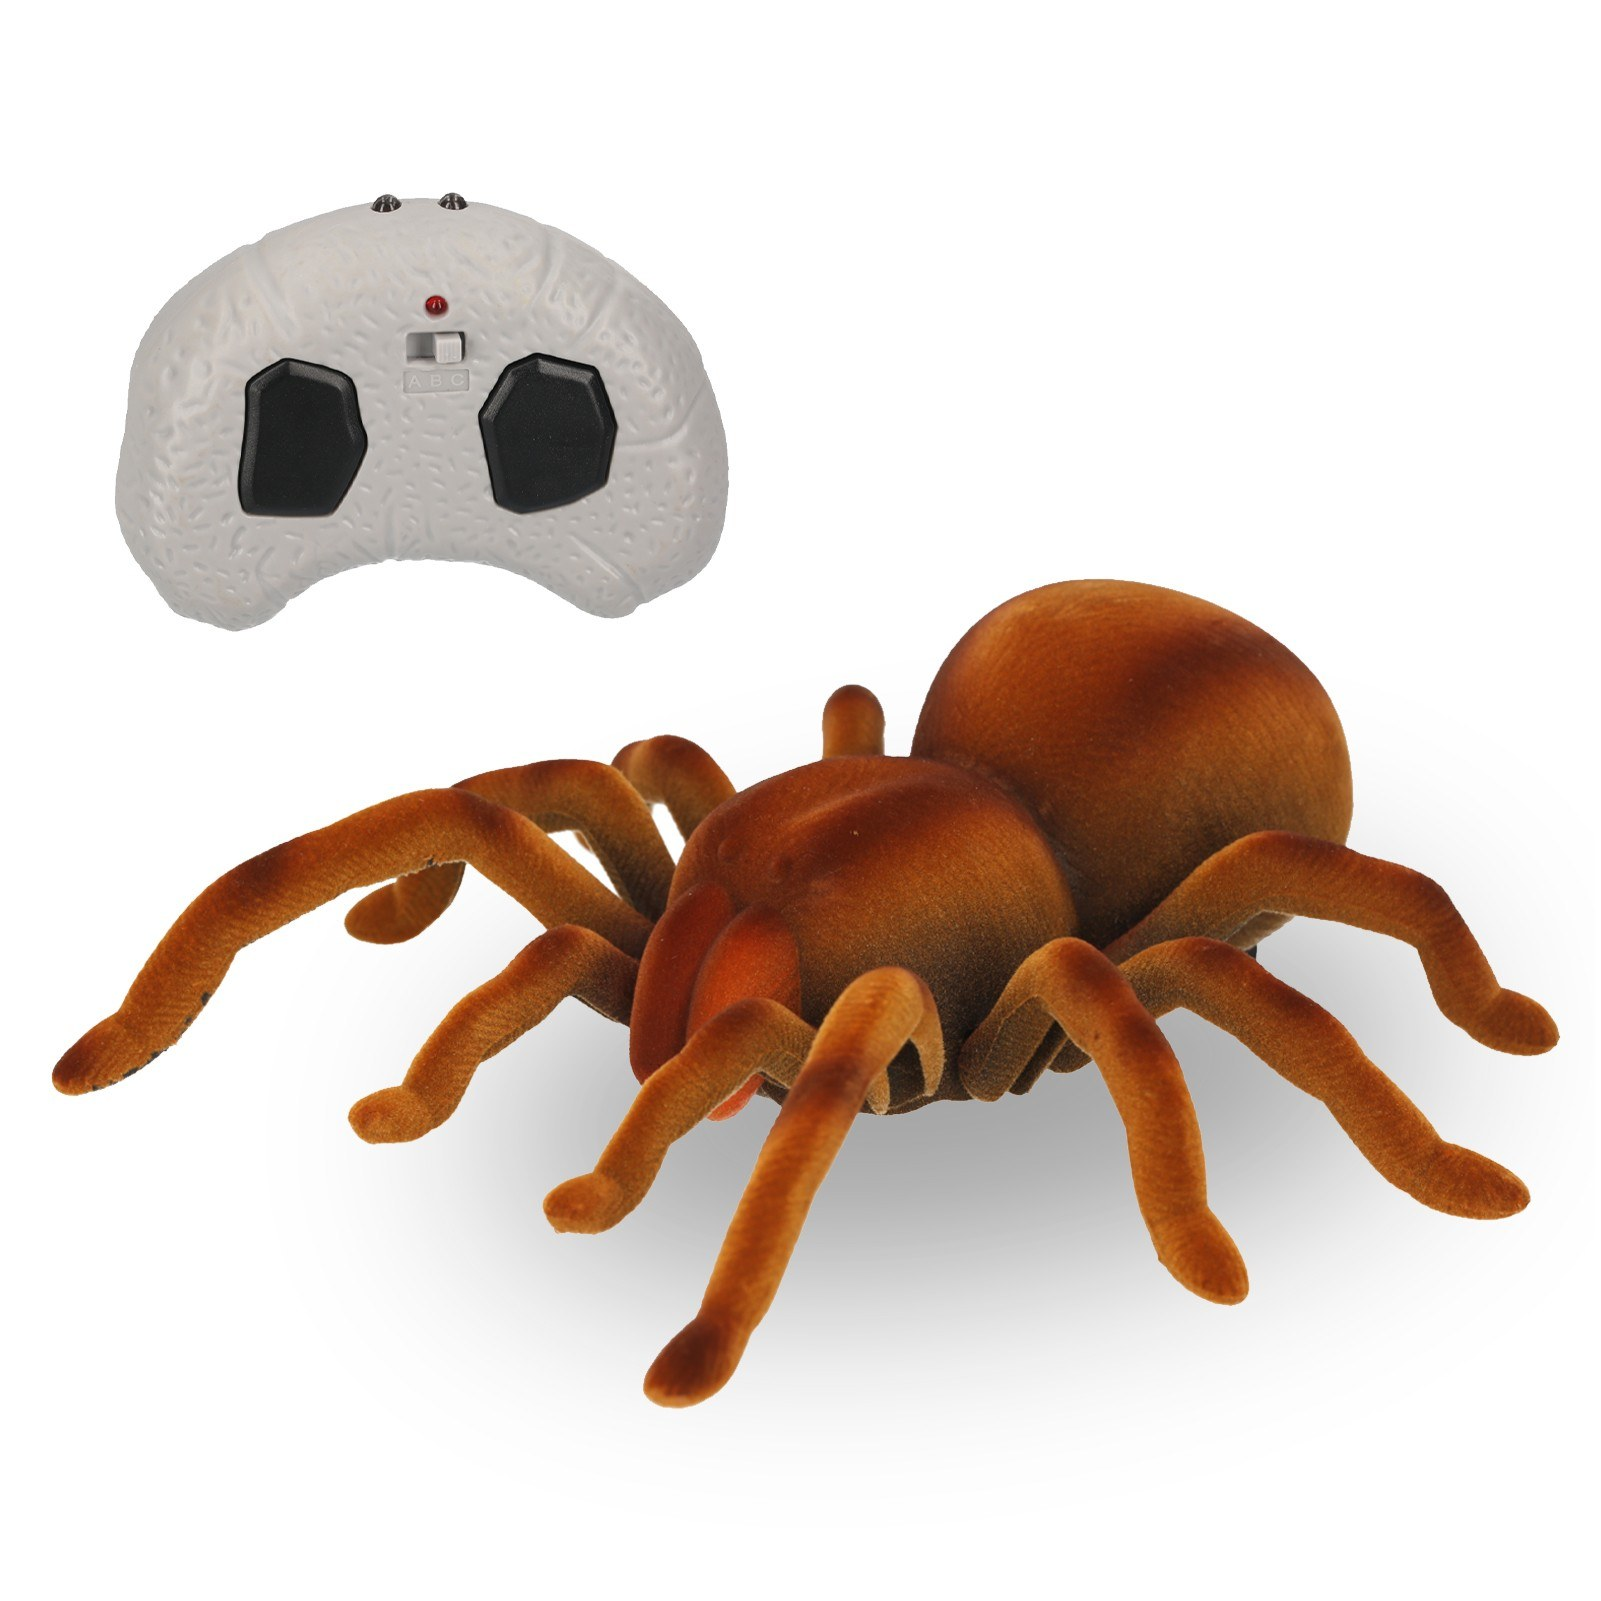 tomtop.com - 61% OFF RC Spider Kids Remote Control Toy, Free Shipping $33.99